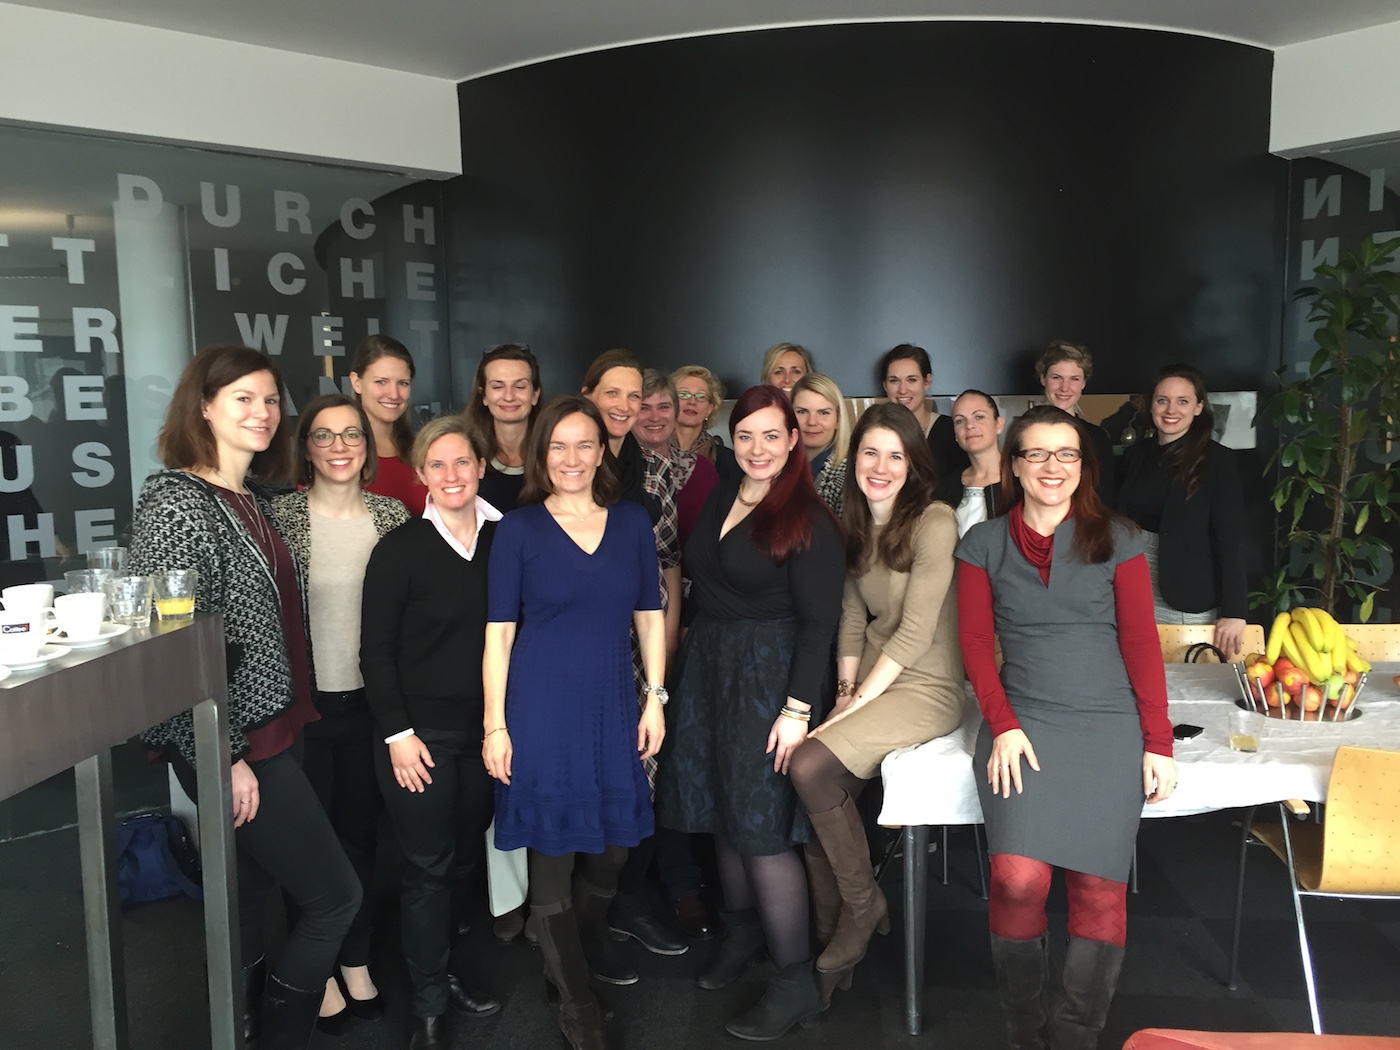 Ketchum Publico put together a Women's Breakfast for colleagues and clients in March.